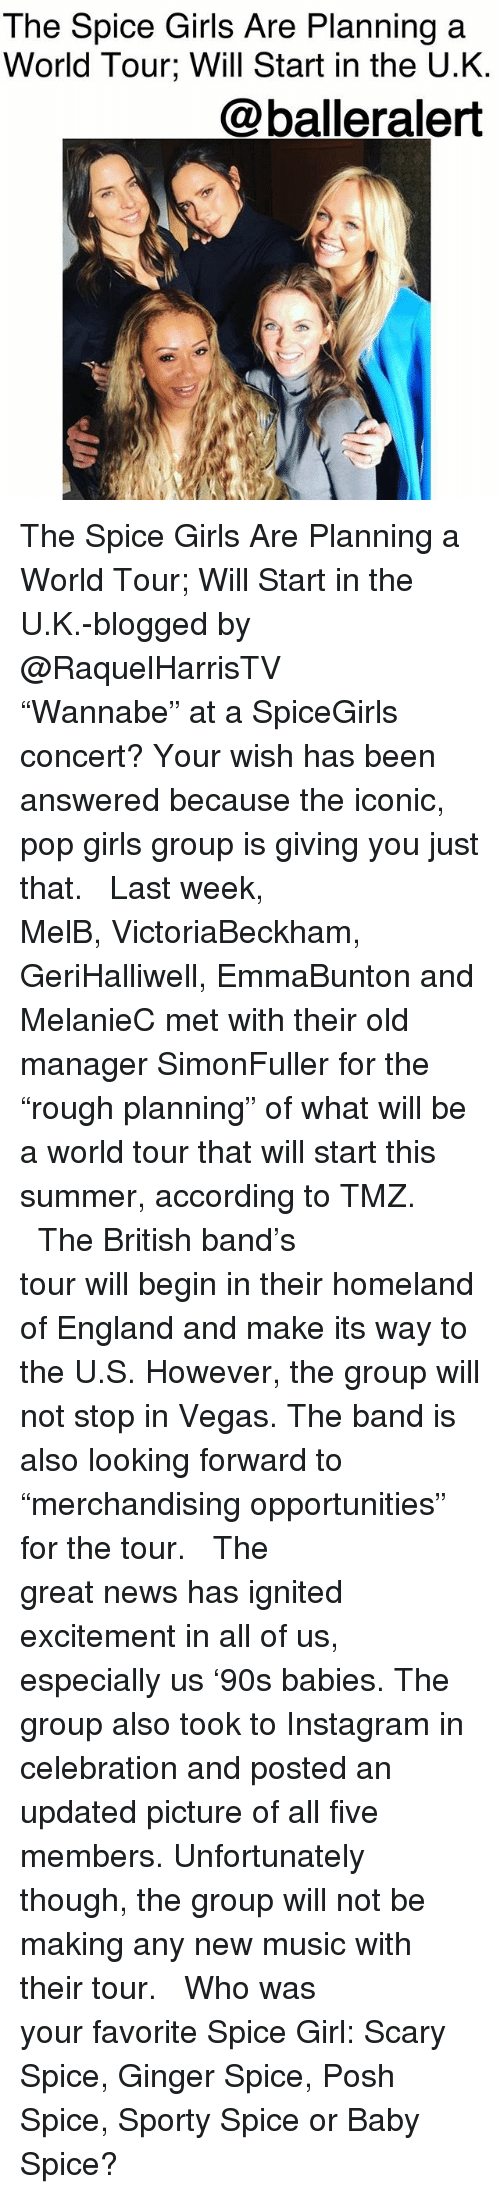 "England, Girls, and Instagram: The Spice Girls Are Planning a  World Tour; Will Start in the U.K.  @balleralert The Spice Girls Are Planning a World Tour; Will Start in the U.K.-blogged by @RaquelHarrisTV ⠀⠀⠀⠀⠀⠀⠀⠀⠀ ⠀⠀⠀⠀⠀⠀⠀⠀⠀ ""Wannabe"" at a SpiceGirls concert? Your wish has been answered because the iconic, pop girls group is giving you just that. ⠀⠀⠀⠀⠀⠀⠀⠀⠀ ⠀⠀⠀⠀⠀⠀⠀⠀⠀ Last week, MelB, VictoriaBeckham, GeriHalliwell, EmmaBunton and MelanieC met with their old manager SimonFuller for the ""rough planning"" of what will be a world tour that will start this summer, according to TMZ. ⠀⠀⠀⠀⠀⠀⠀⠀⠀ ⠀⠀⠀⠀⠀⠀⠀⠀⠀ The British band's tour will begin in their homeland of England and make its way to the U.S. However, the group will not stop in Vegas. The band is also looking forward to ""merchandising opportunities"" for the tour. ⠀⠀⠀⠀⠀⠀⠀⠀⠀ ⠀⠀⠀⠀⠀⠀⠀⠀⠀ The great news has ignited excitement in all of us, especially us '90s babies. The group also took to Instagram in celebration and posted an updated picture of all five members. Unfortunately though, the group will not be making any new music with their tour. ⠀⠀⠀⠀⠀⠀⠀⠀⠀ ⠀⠀⠀⠀⠀⠀⠀⠀⠀ Who was your favorite Spice Girl: Scary Spice, Ginger Spice, Posh Spice, Sporty Spice or Baby Spice?"